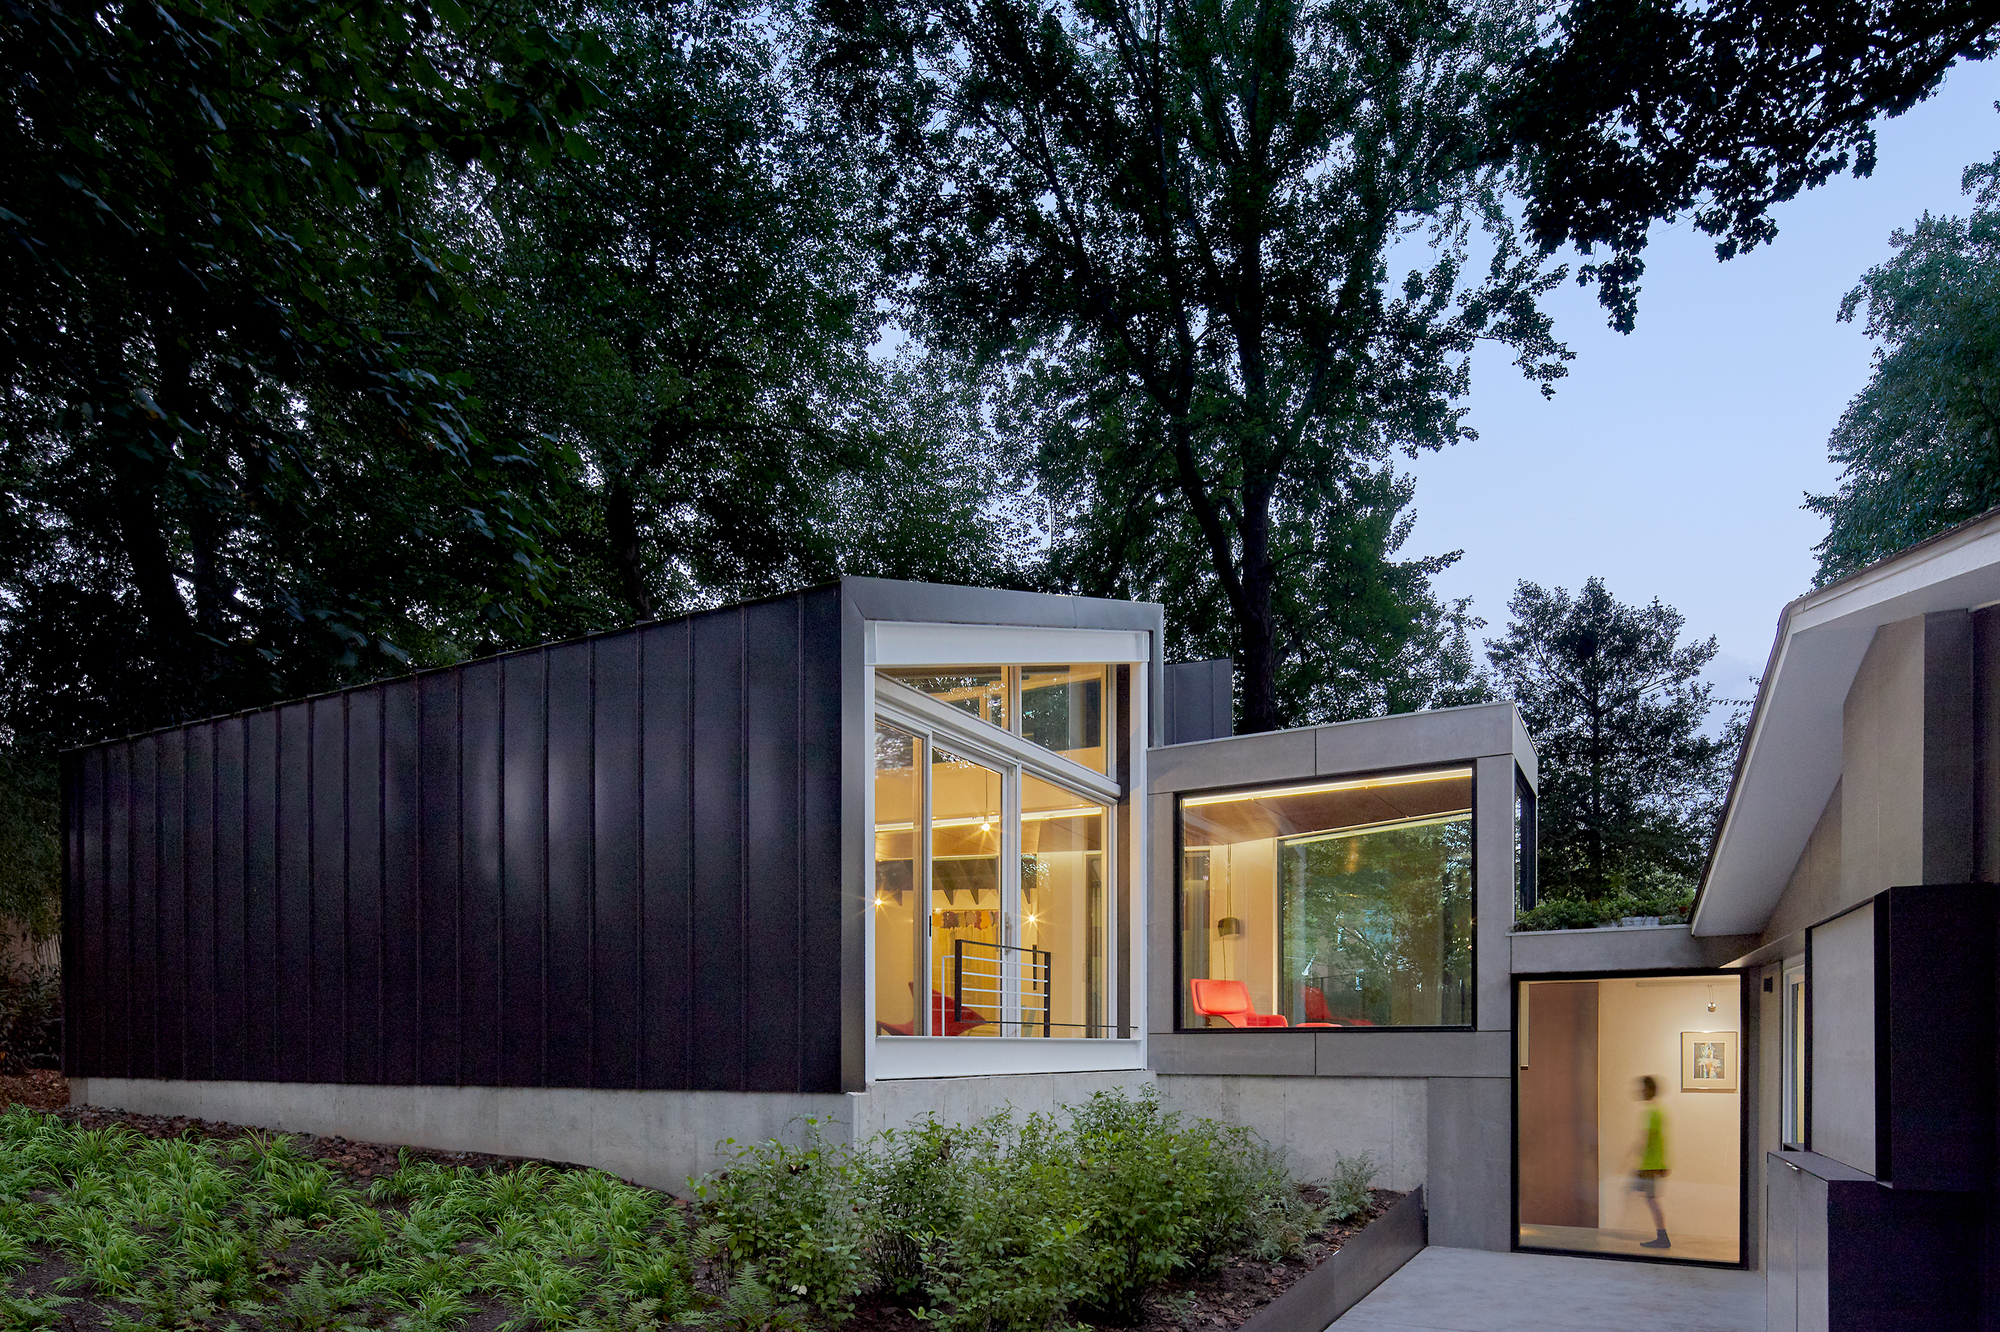 Gallery of Dual Modern House / KUBE architecture - 1